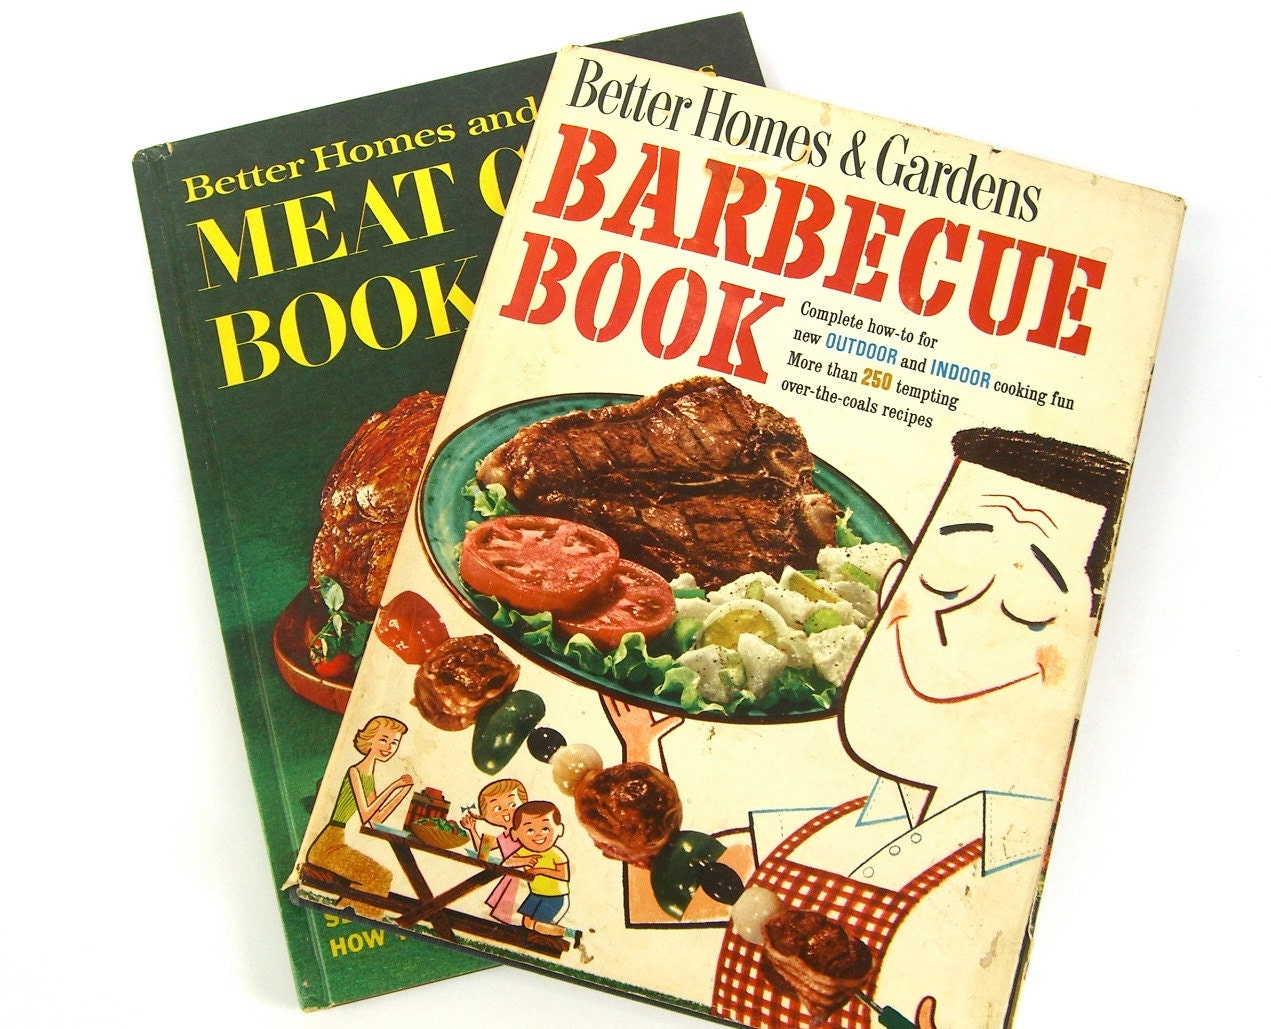 2 Vintage Cookbooks, Barbecue Book, Better Homes and Gardens Meat Cookbook,  1950s 1960s Illustrations, Recipes, Father's Day, Under 10